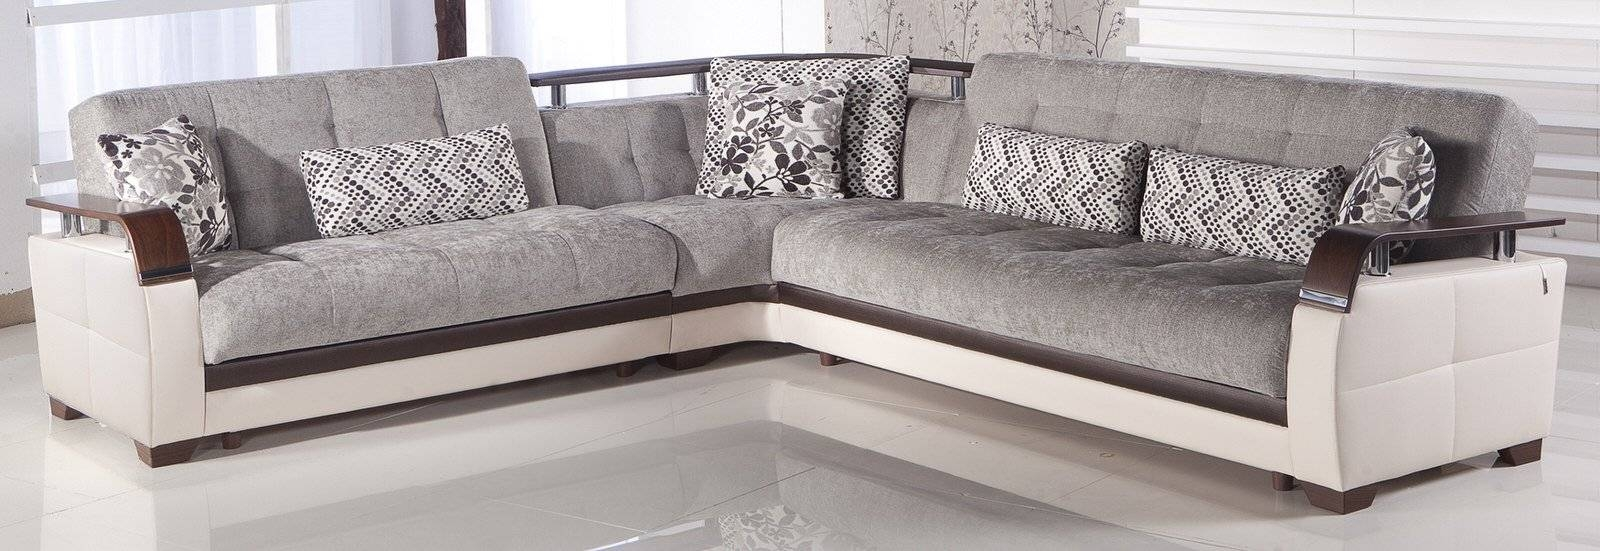 Sofas Center : Grey Sofa Set Unusual Picture Design Gray Free for Unusual Sofa (Image 9 of 23)